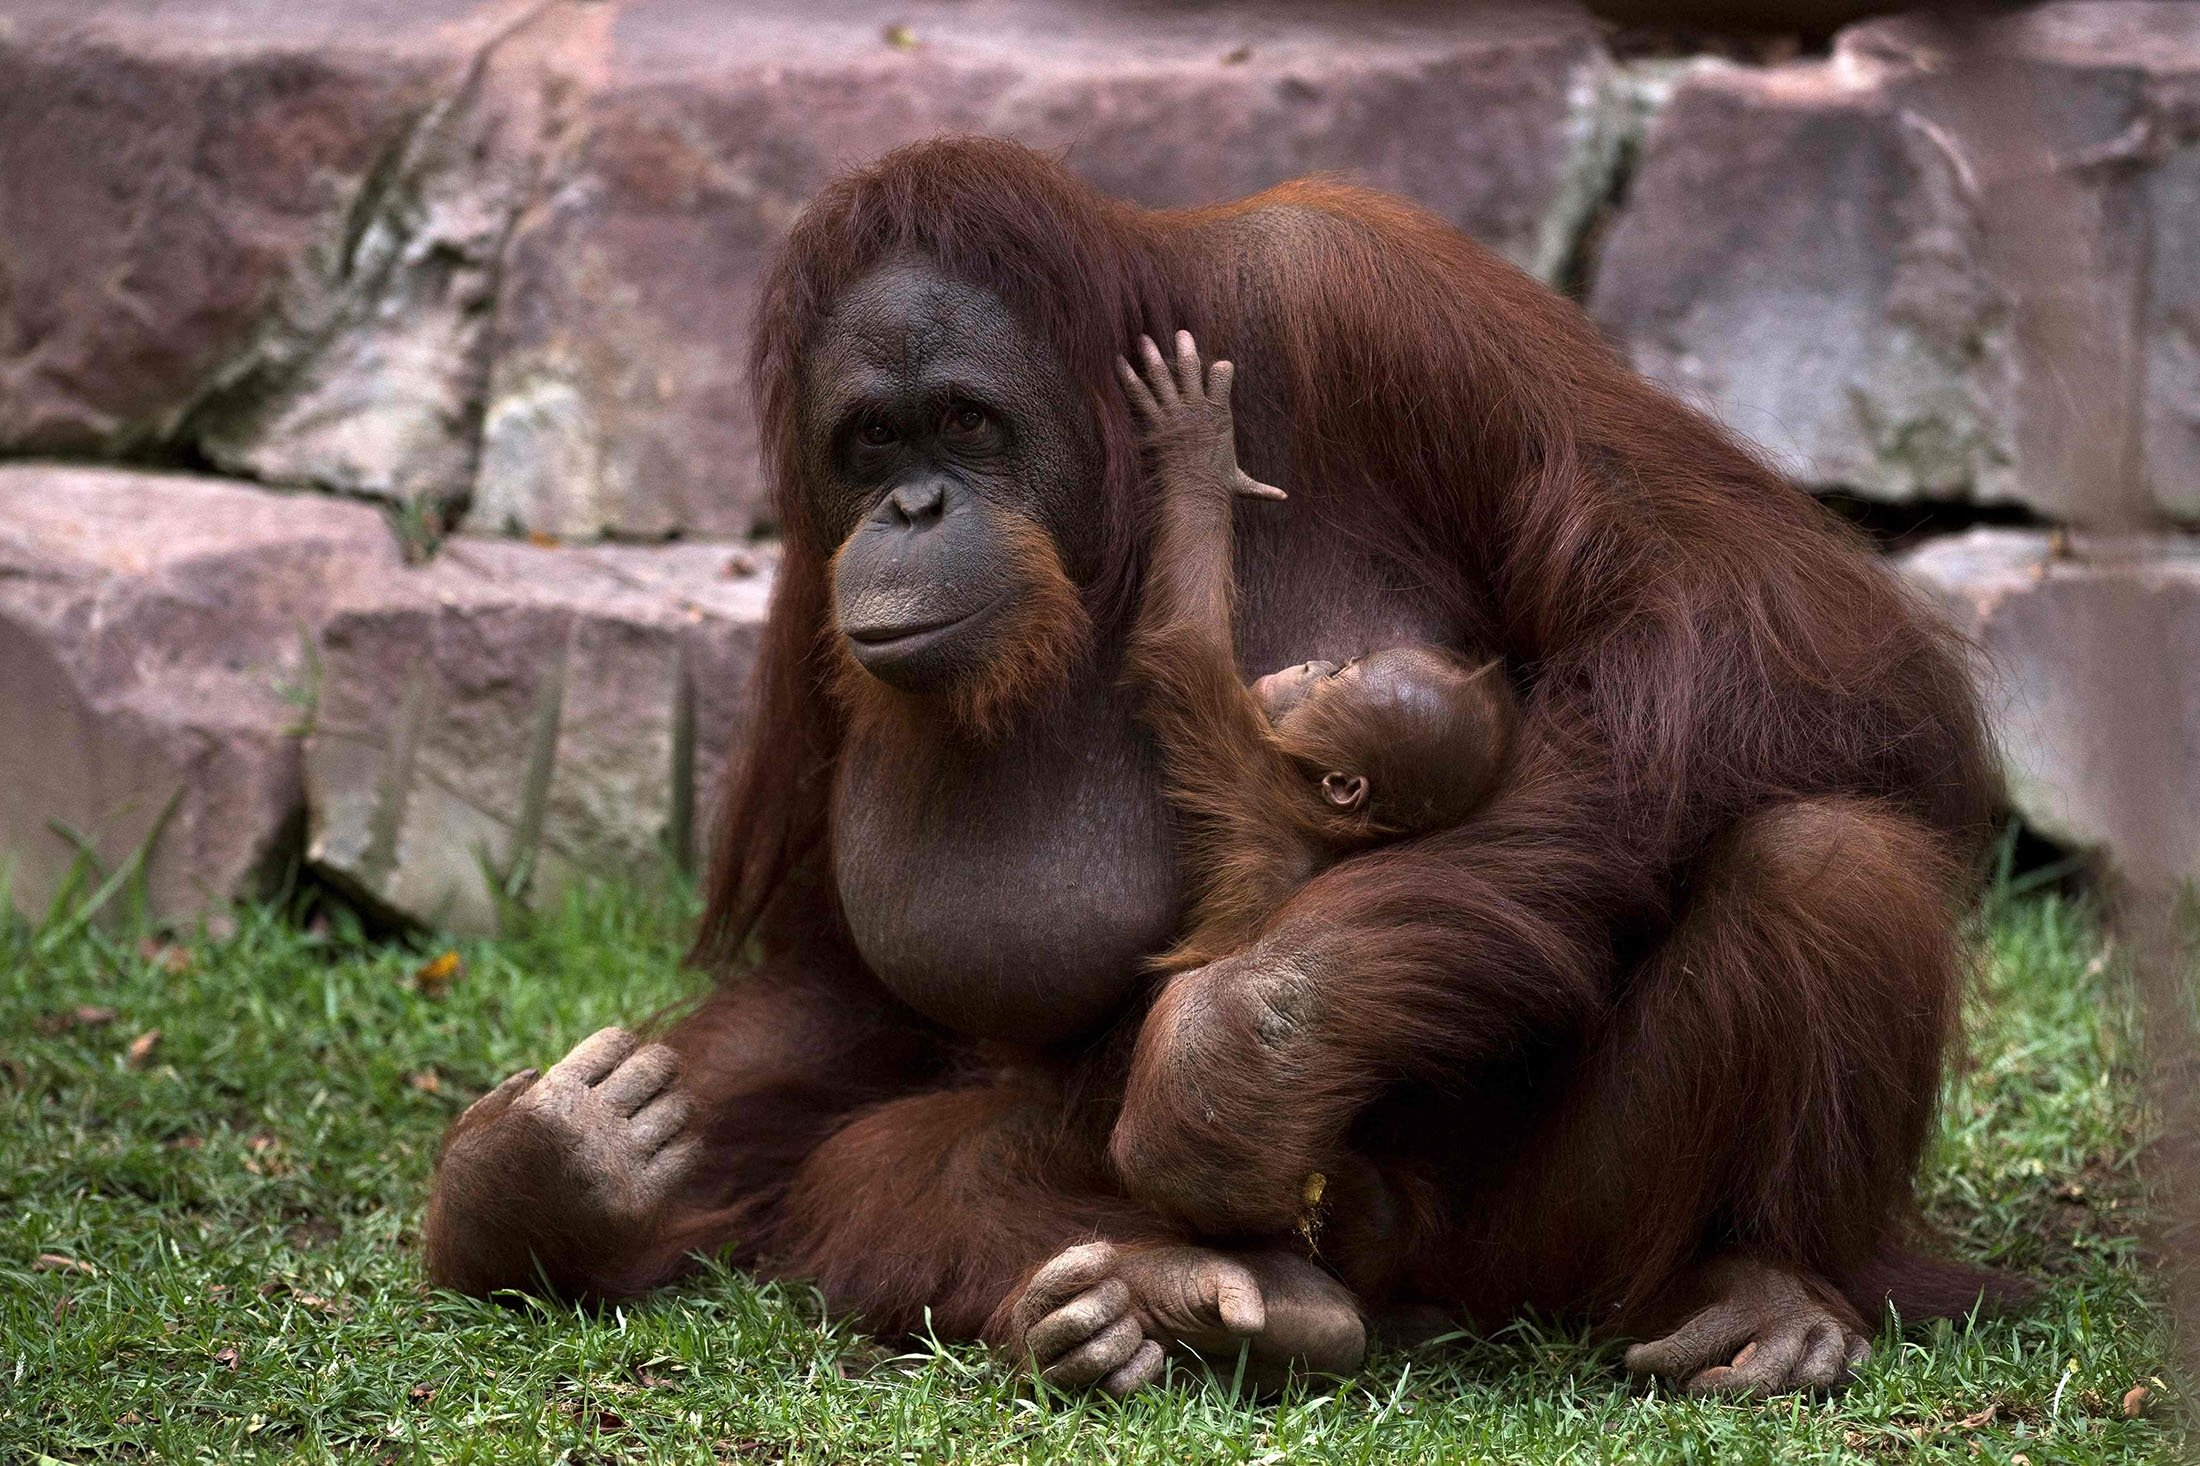 A Bornean orangutan called Suli holds her newborn baby at their enclosure at the Bioparc zoological park in Fuengirola, Spain, Aug. 12, 2021. (AFP Photo)